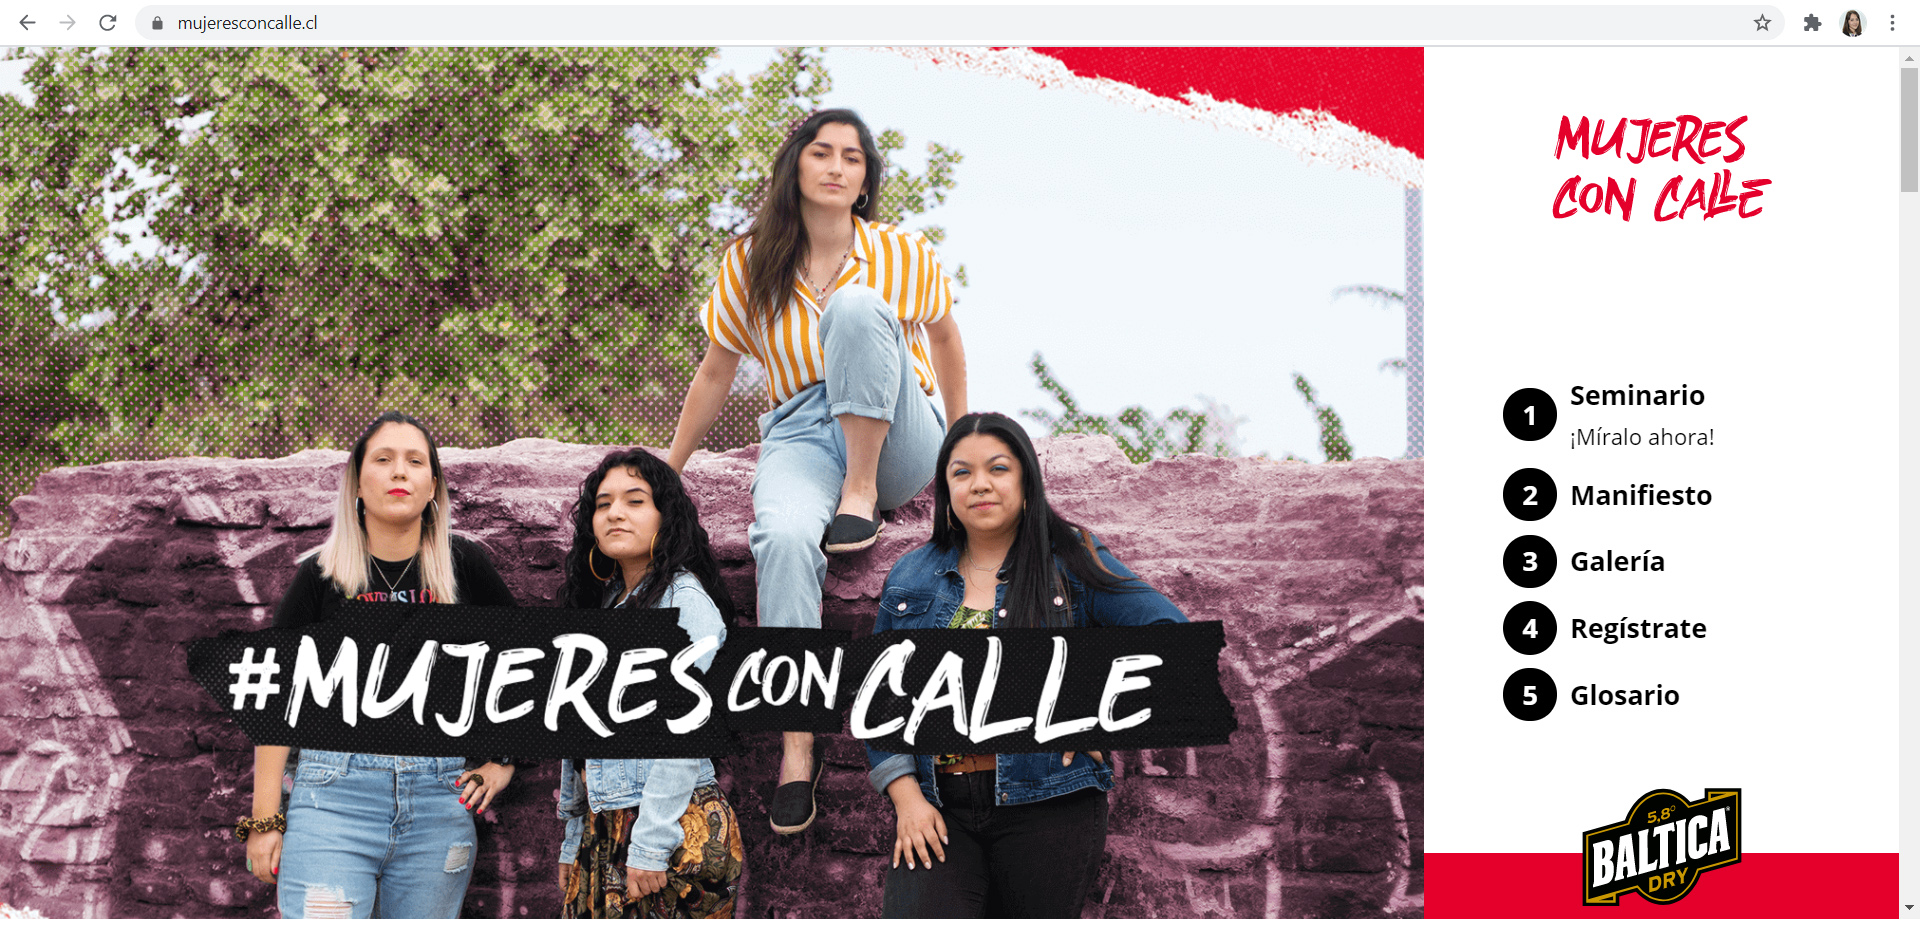 mujeresconcalle.cl